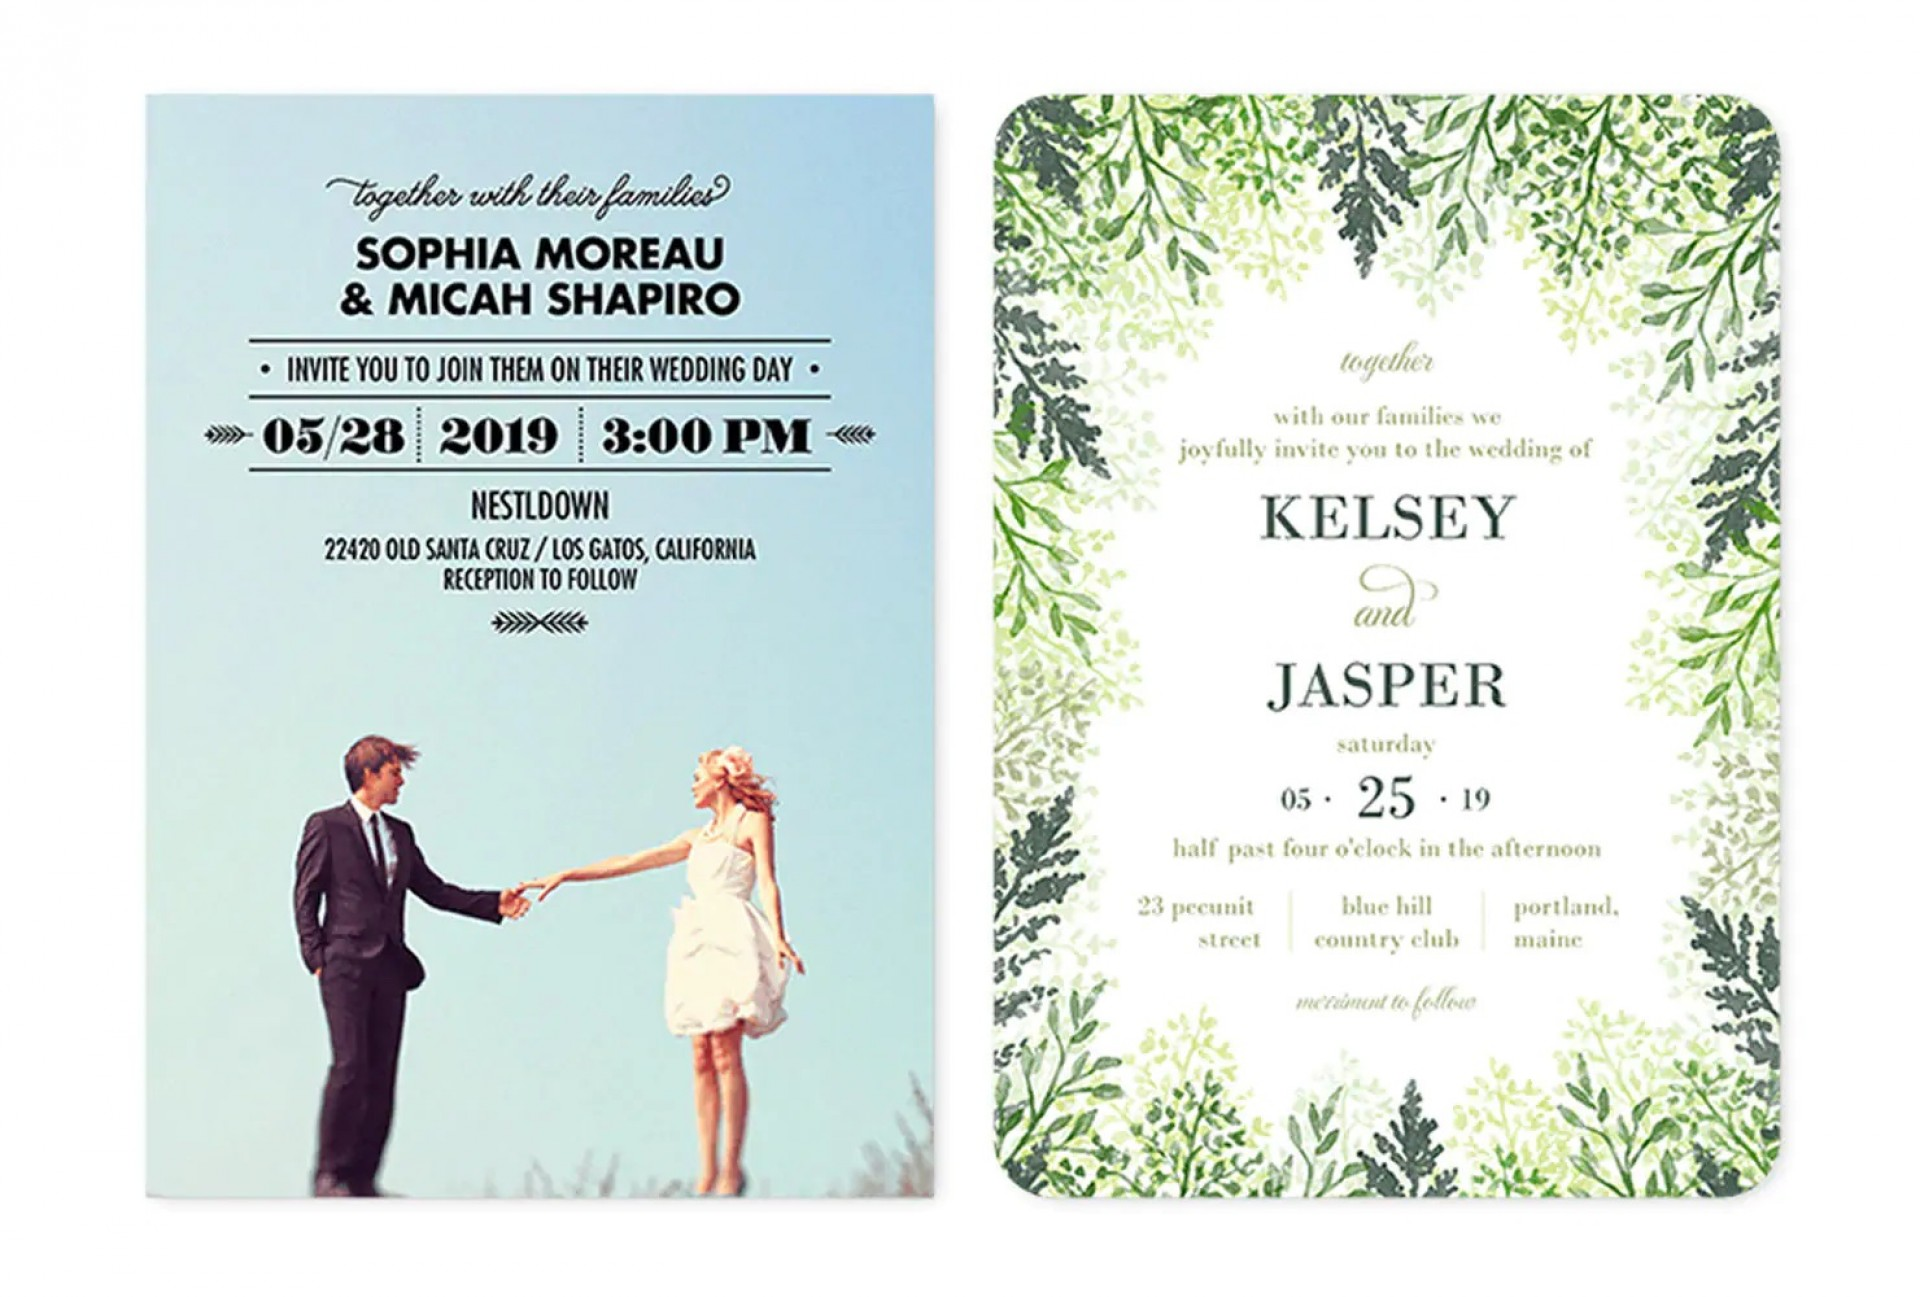 010 Awesome Wedding Invite Wording Template Idea  Templates Chinese Invitation Microsoft Word From Bride And Groom Example Inviting1920